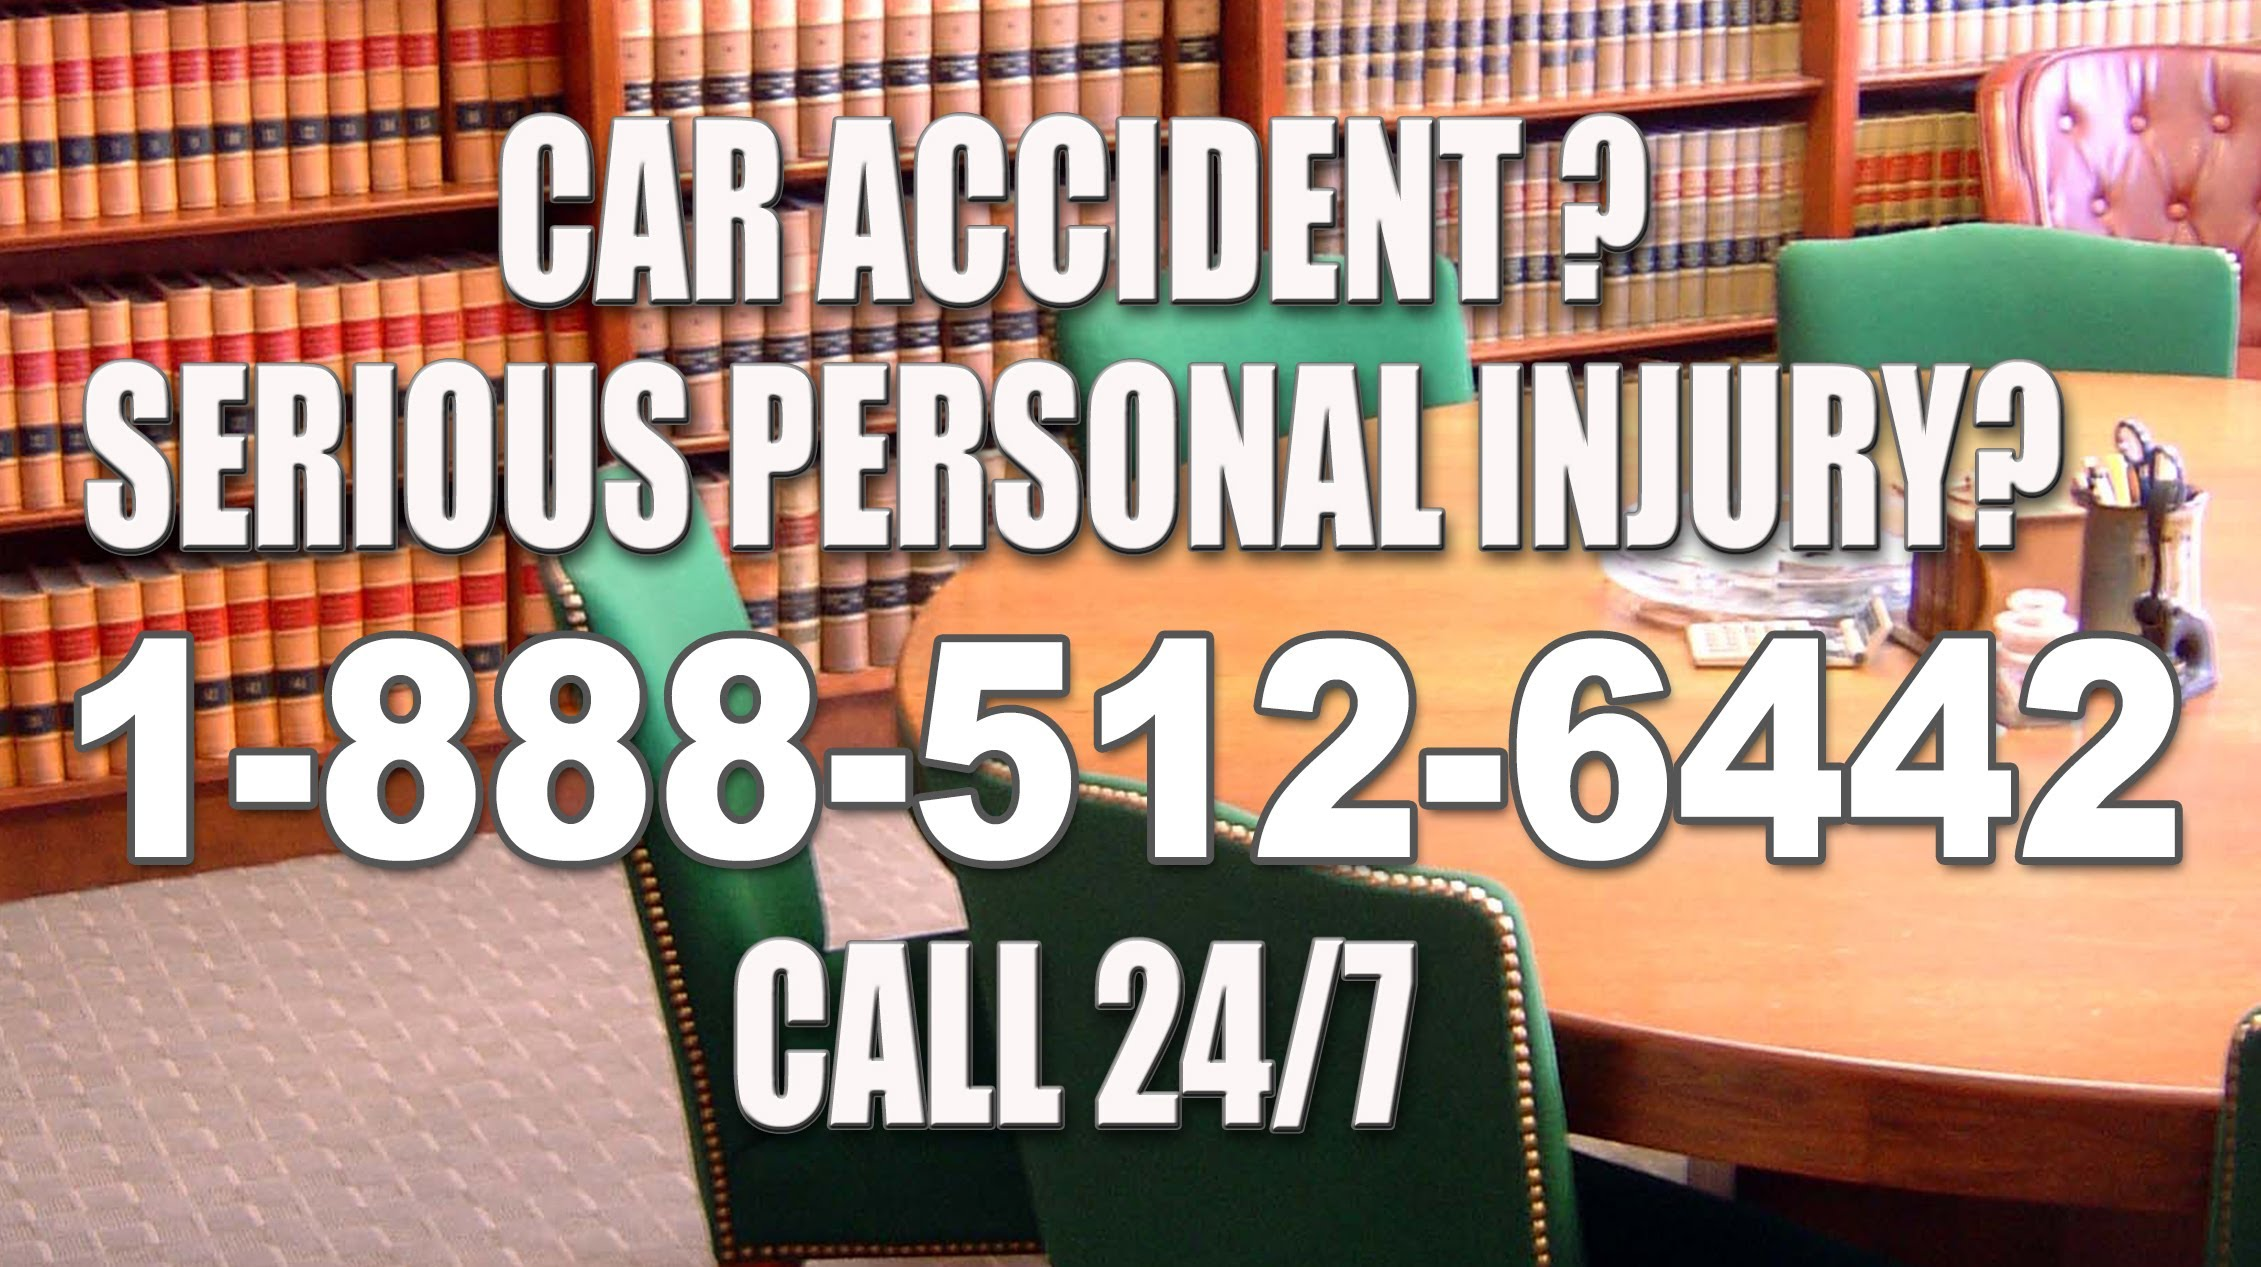 Get Car Accident Lawyer Advice for Personal Injury